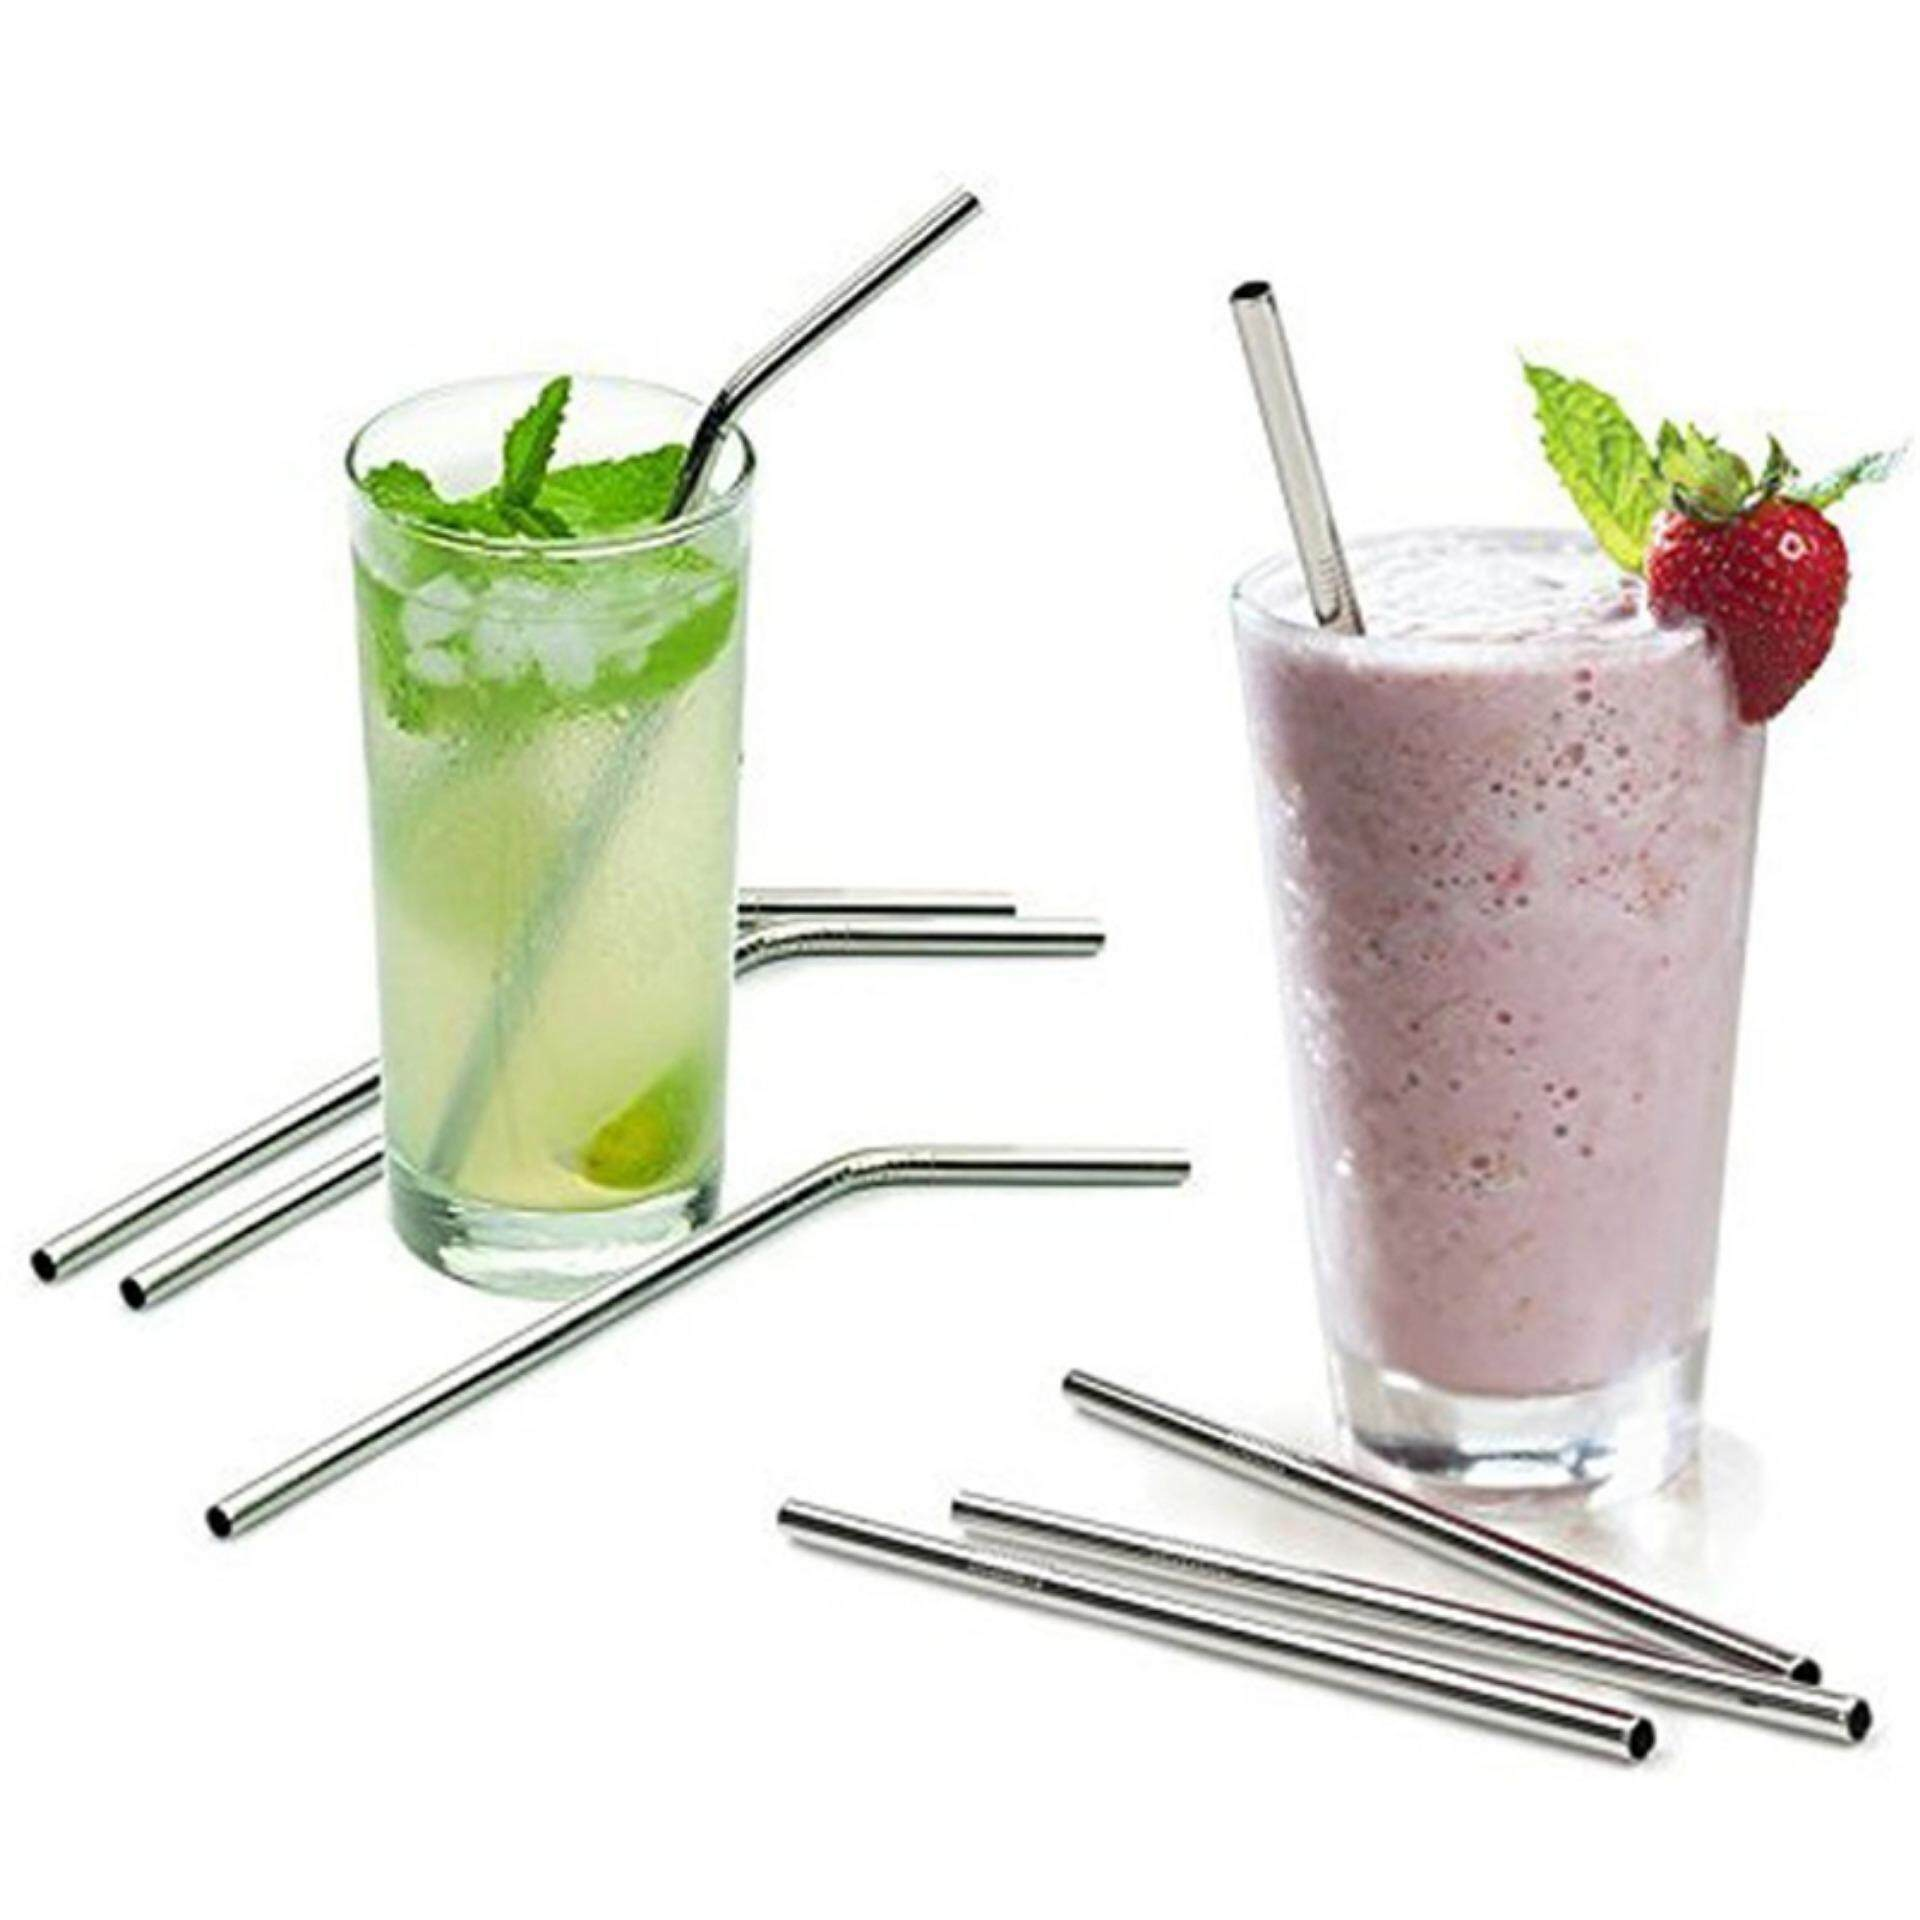 4X Stainless Steel Straws Reusable 0.5 inch Extra Long Drinking Straws Silver - intl